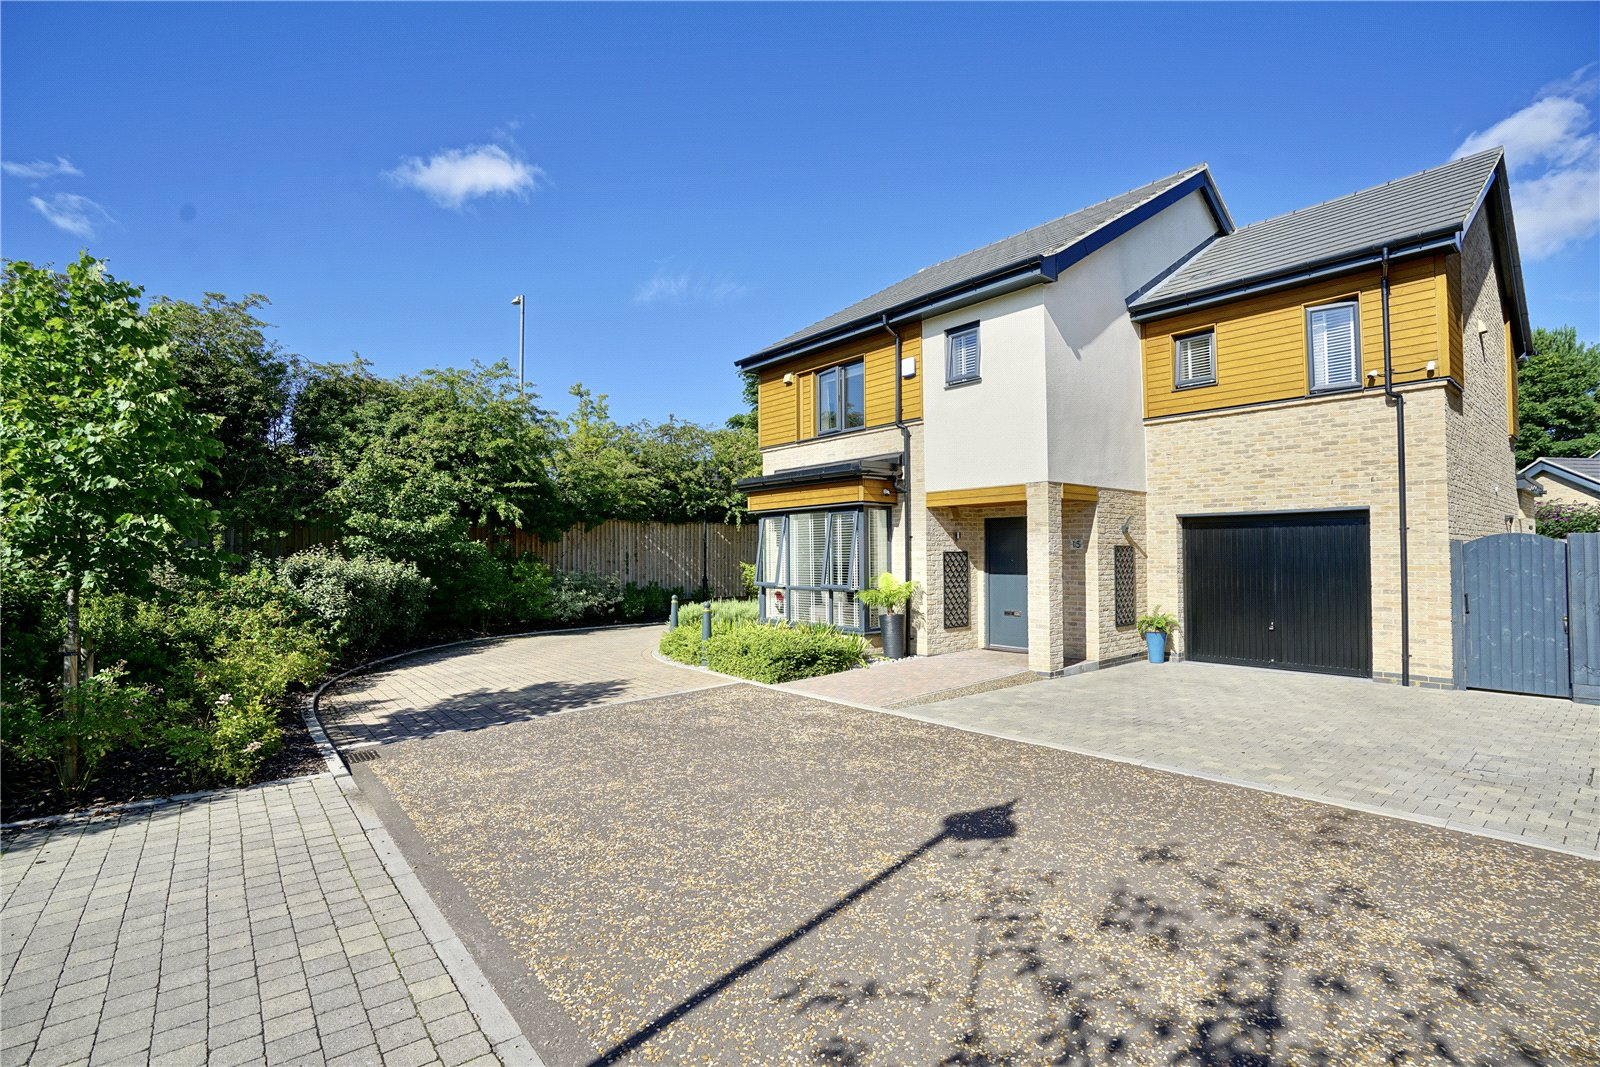 4 bed house for sale in Eaton Close, Eaton Ford 0